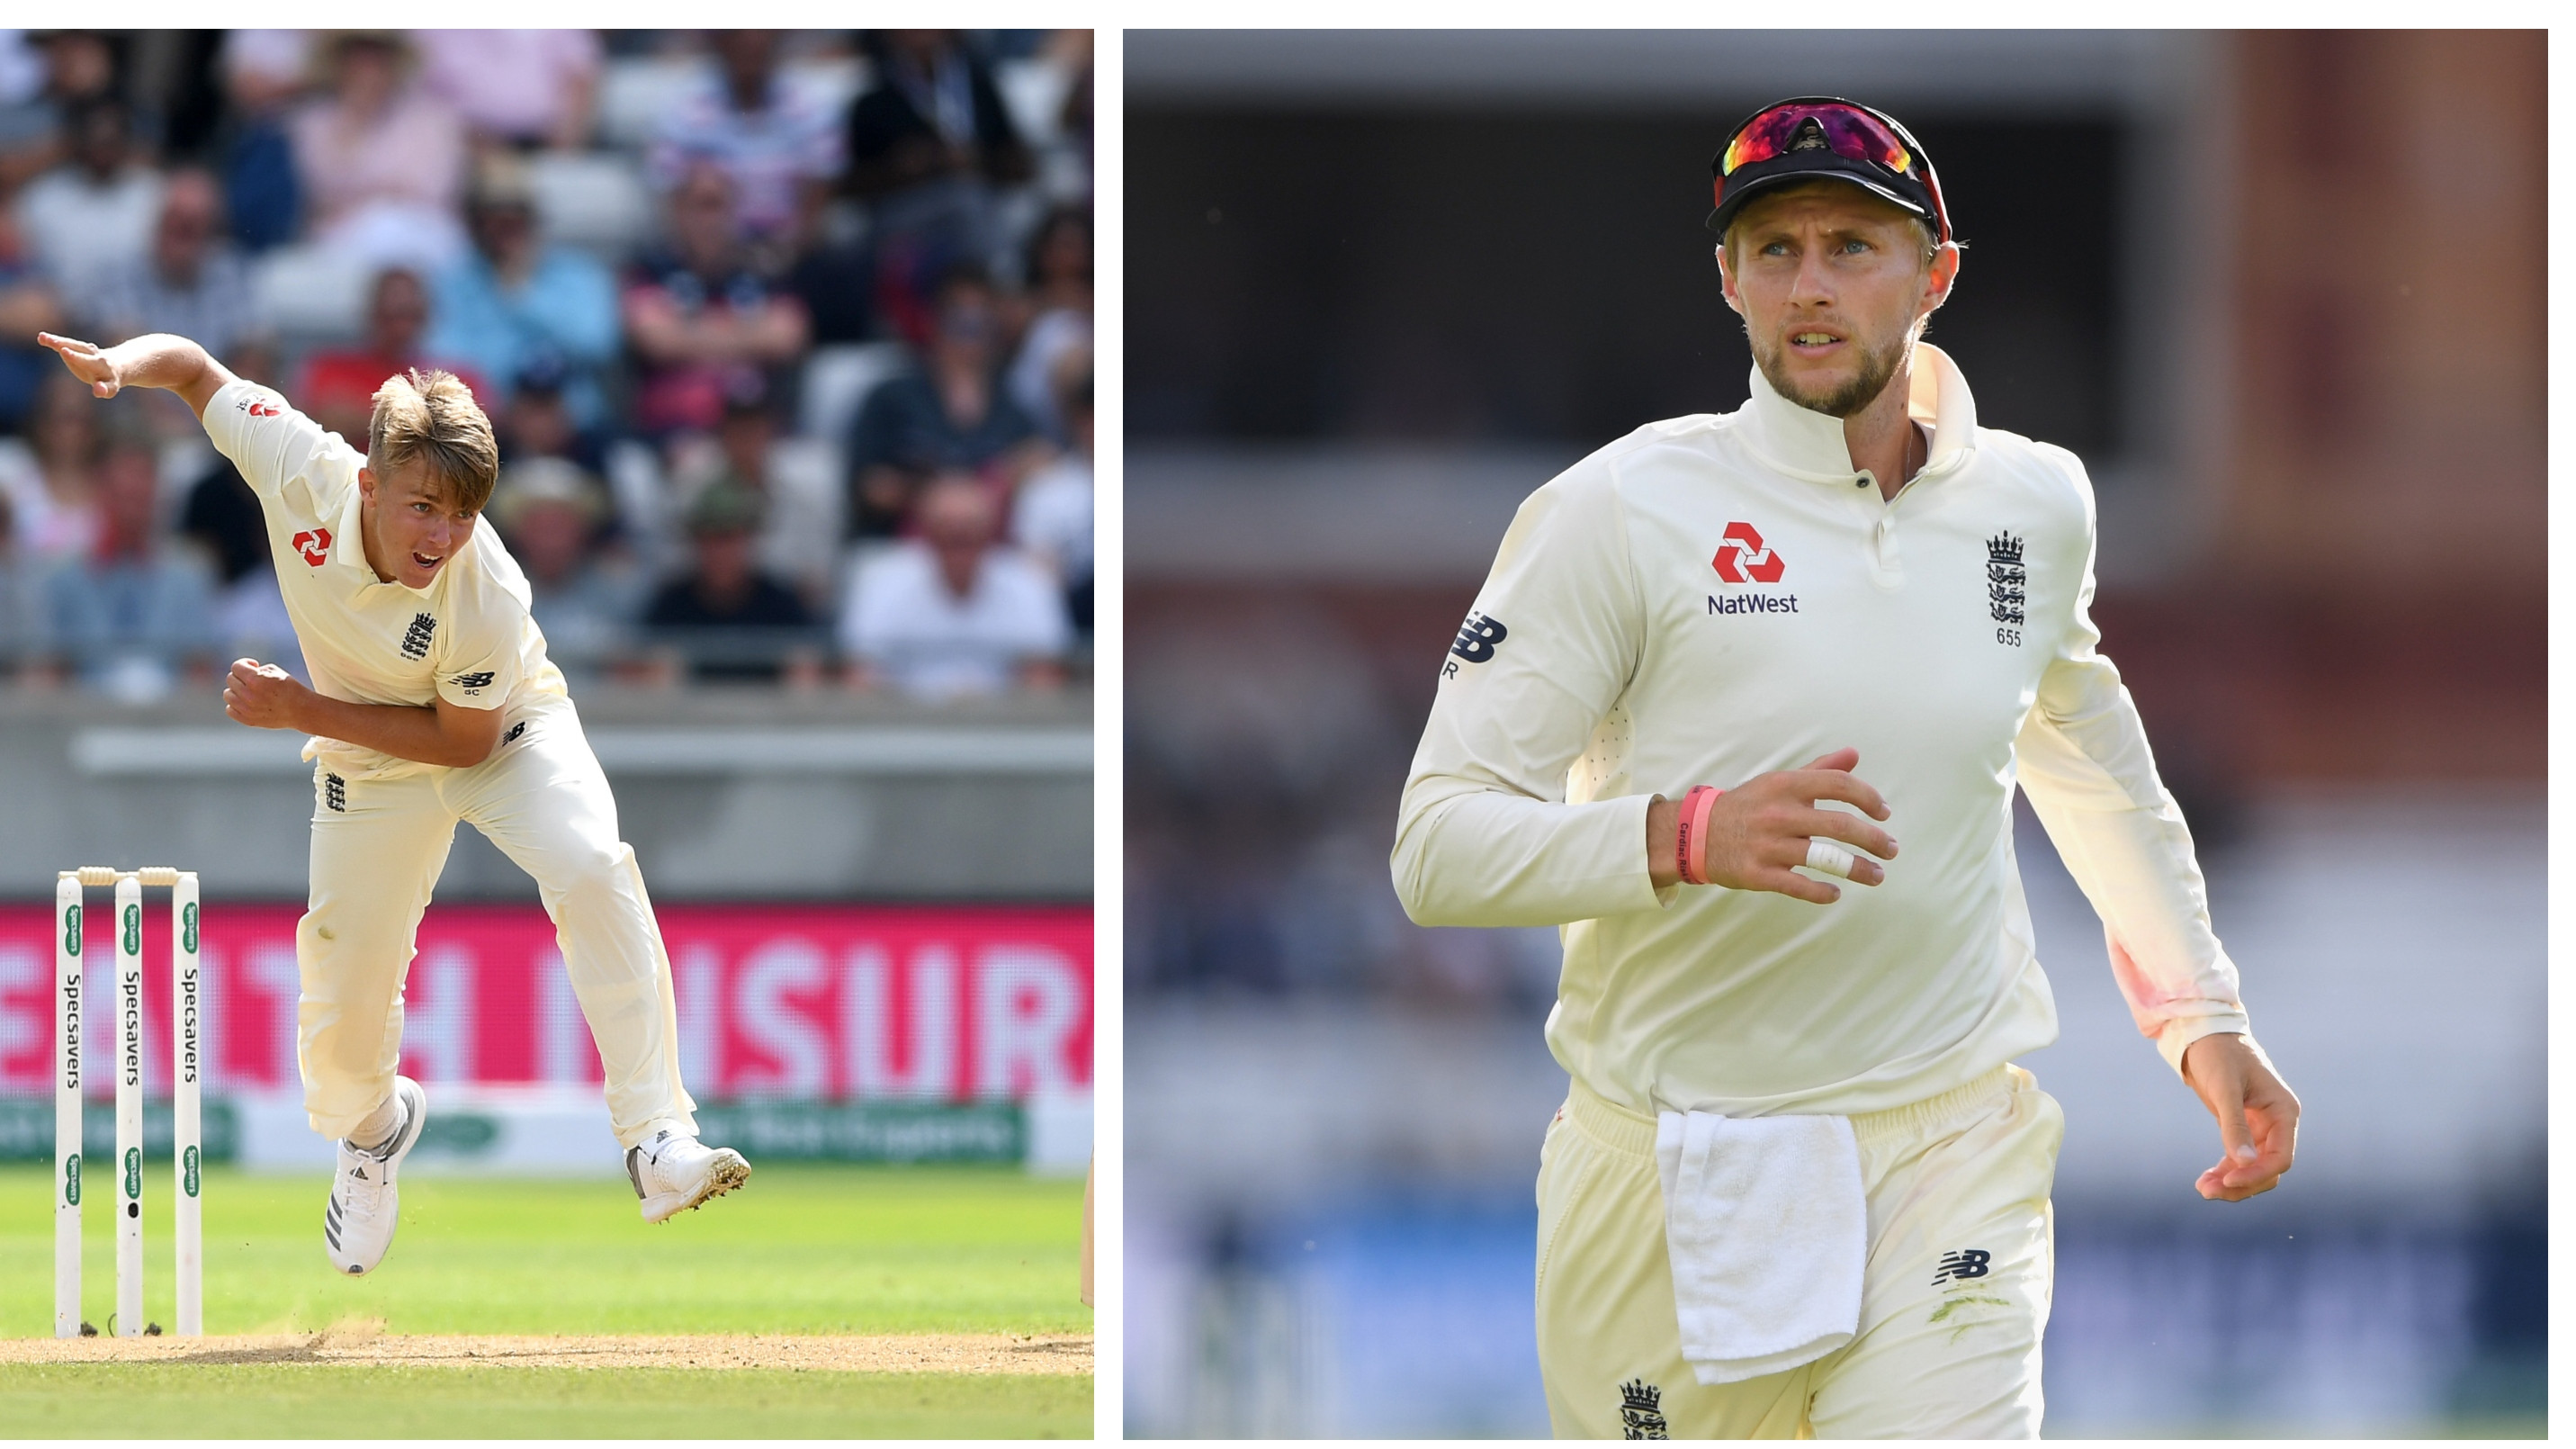 ENG vs IND 2018: Joe Root admits leaving Sam Curran out for Trent Bridge was a tough decision